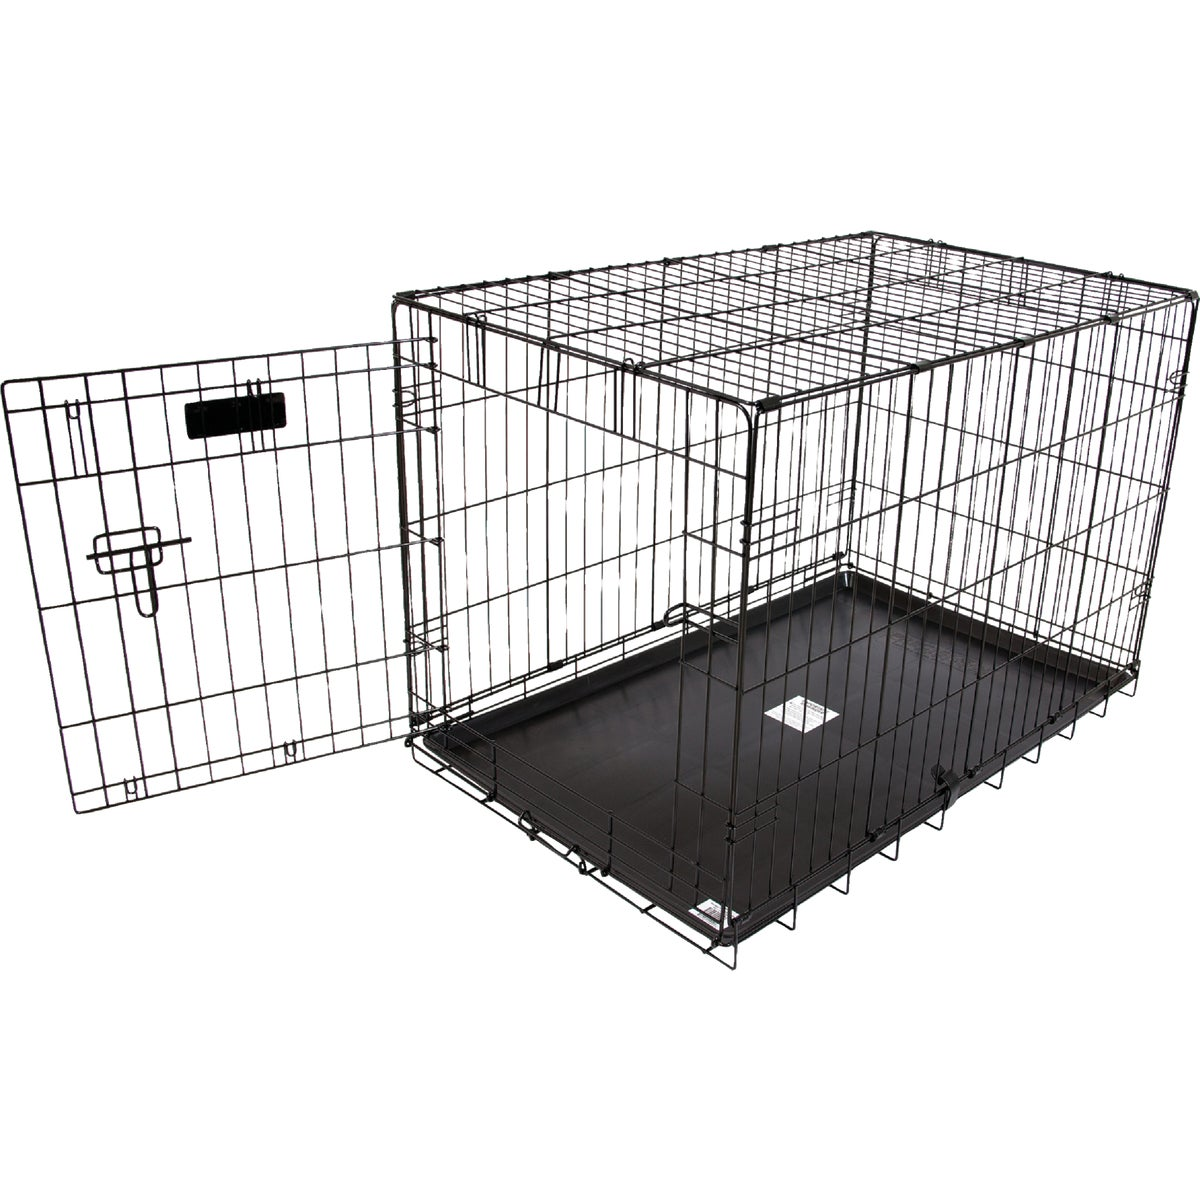 34.6X22.6X25.4 DOG CRATE - 21944 by Petmate Doskocil